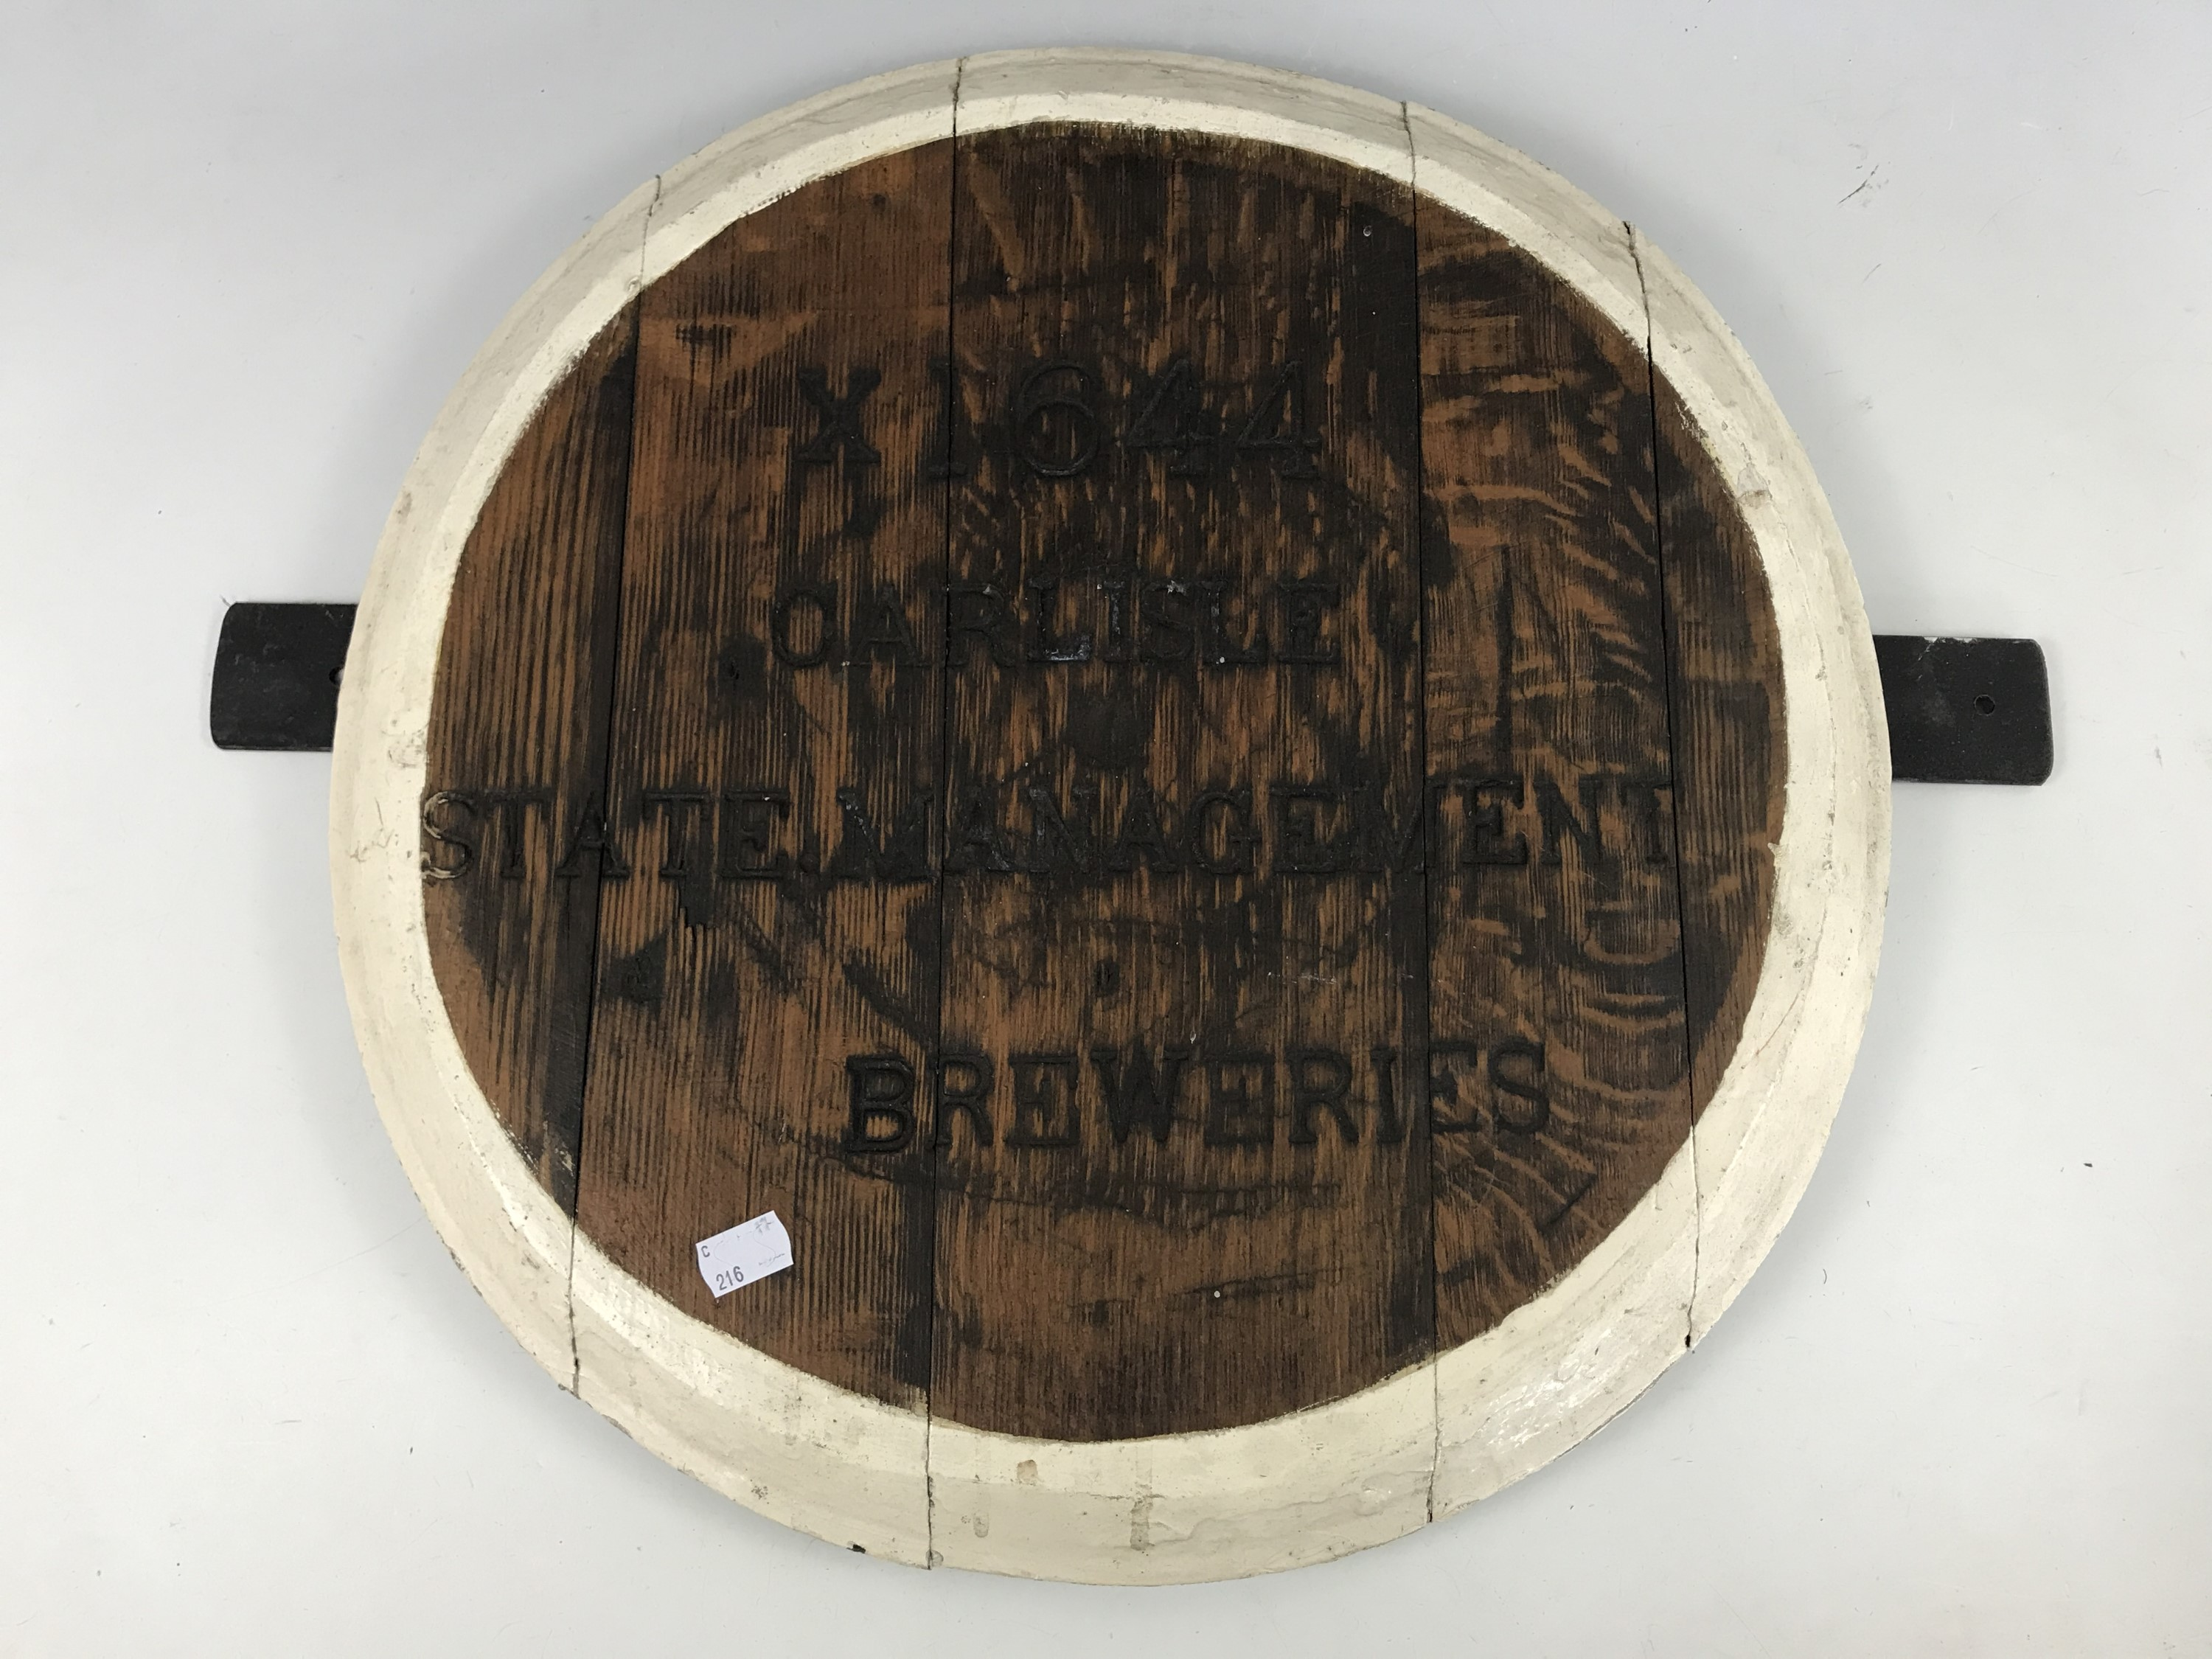 Lot 13 - A Carlisle State Management Breweries oak barrel head, 49 cm